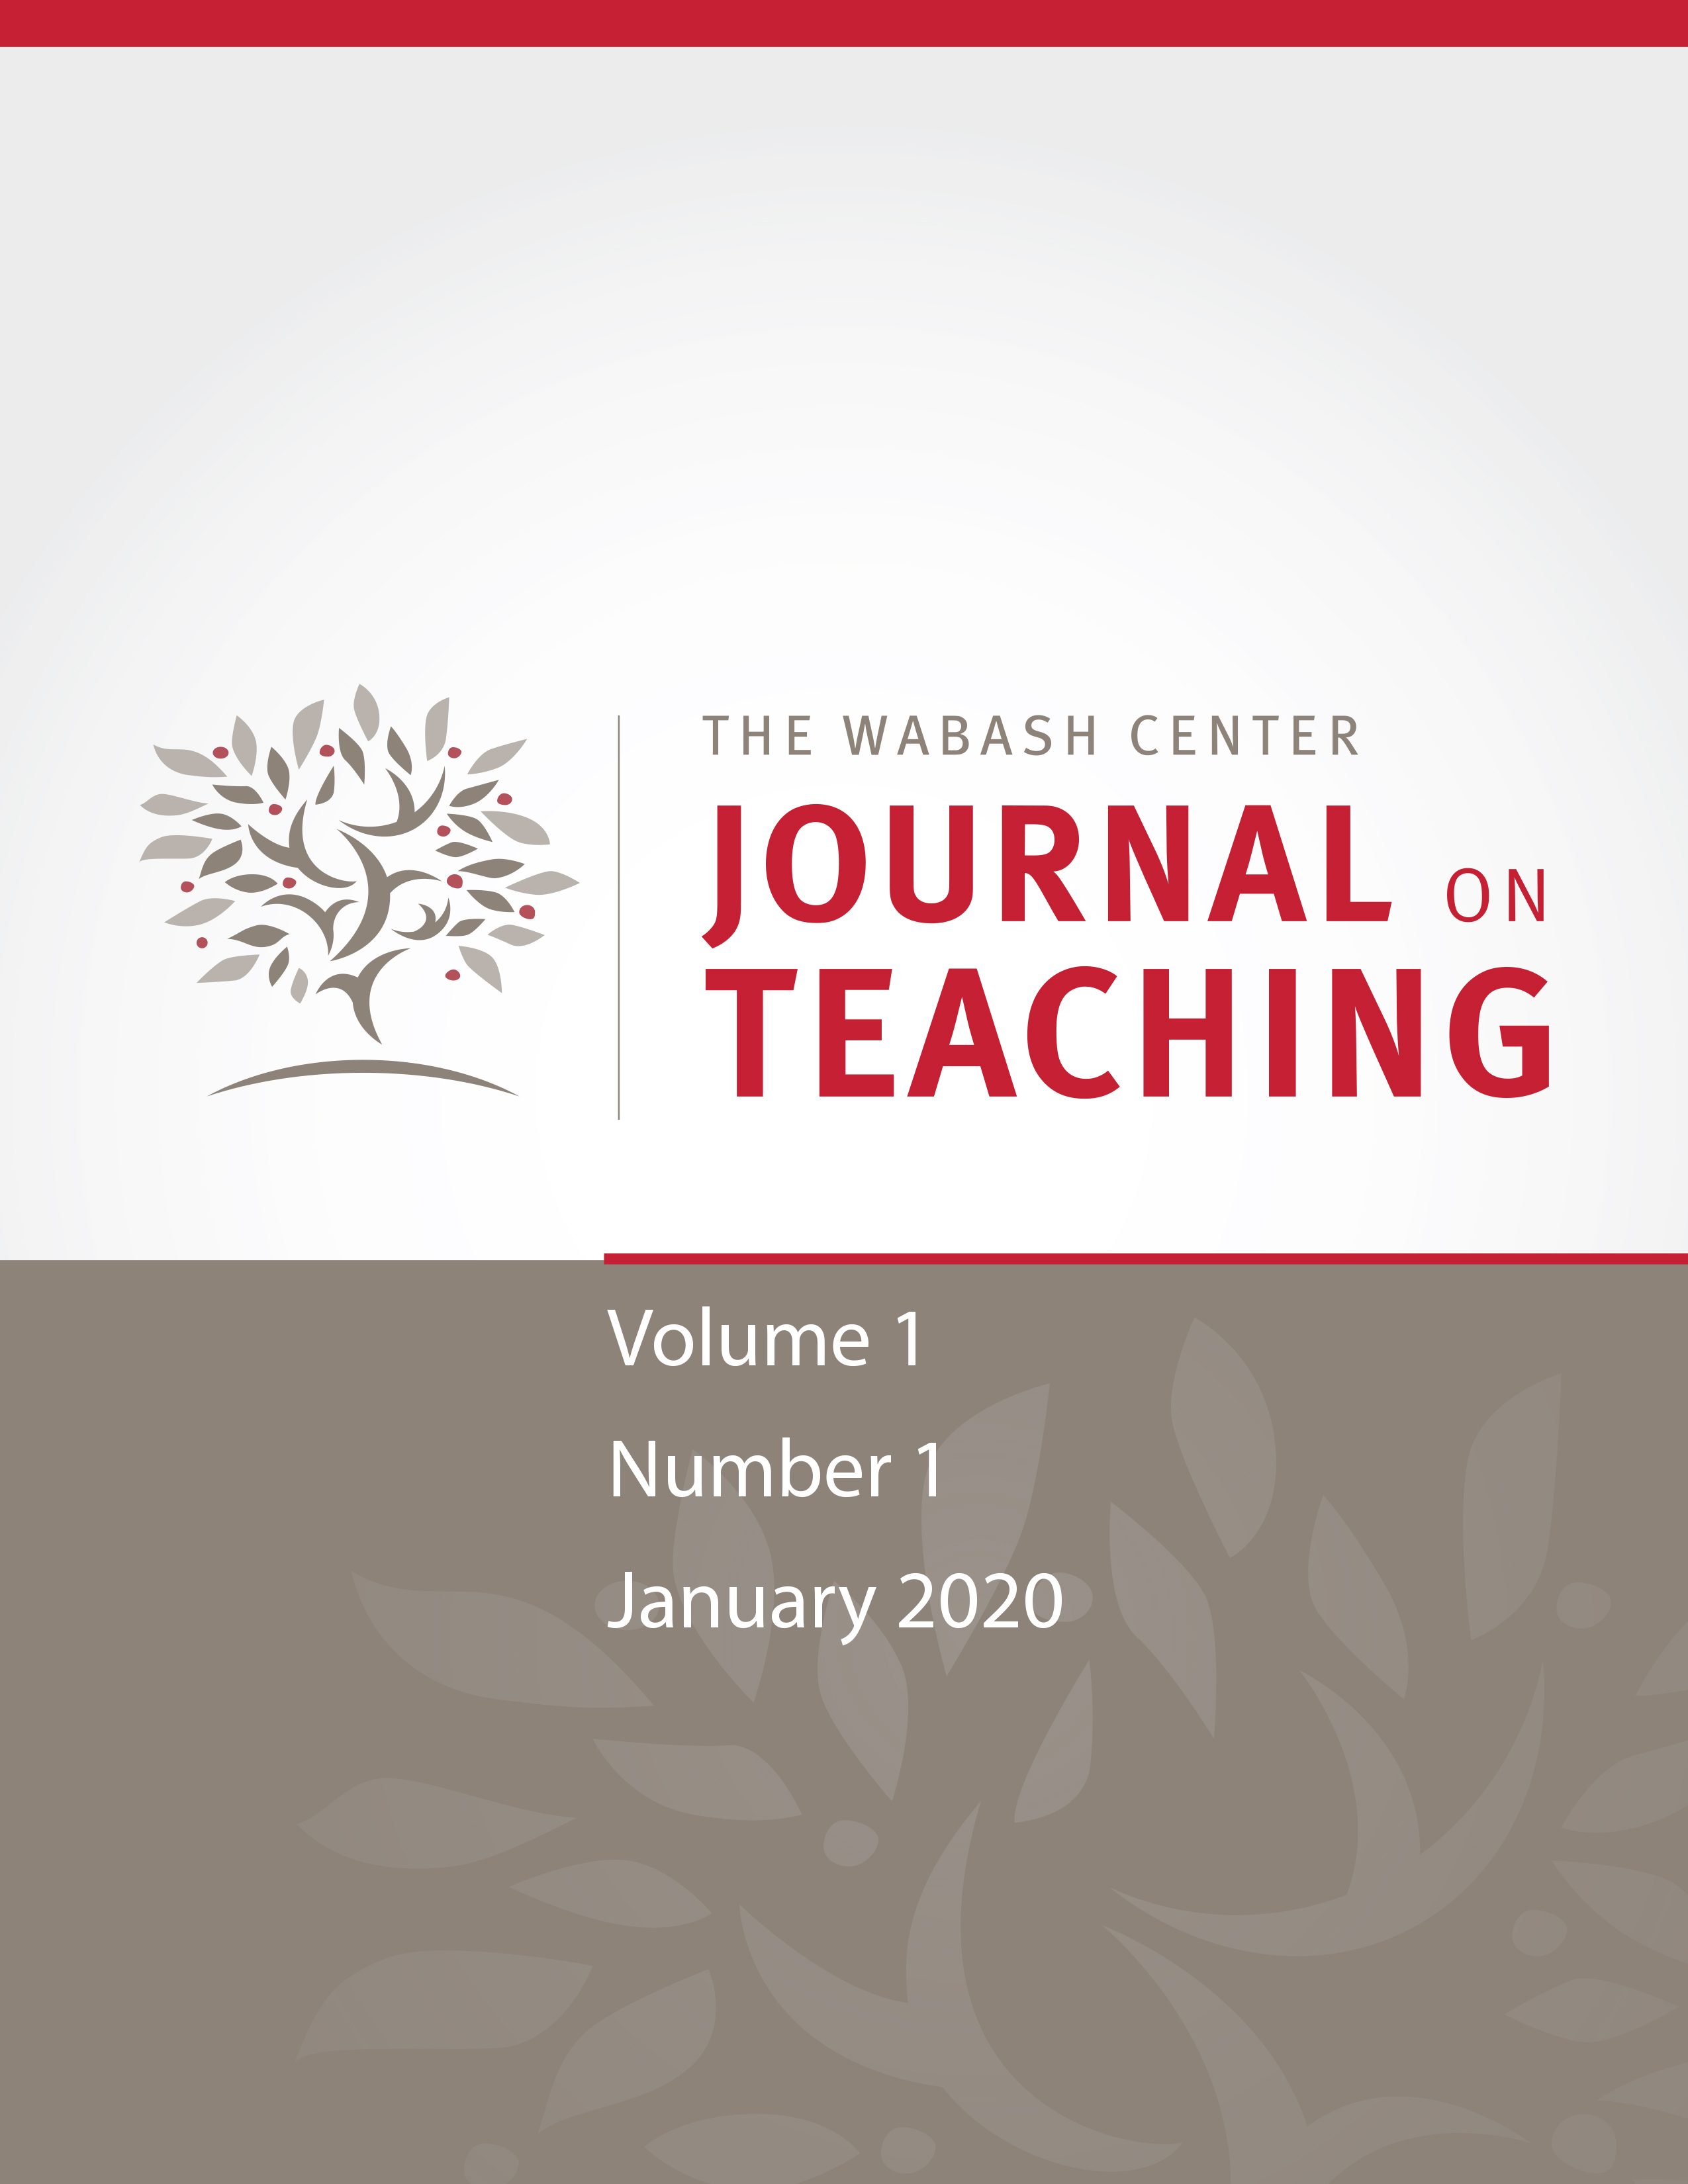 JoT volume 1, issue 1 (January 2020)